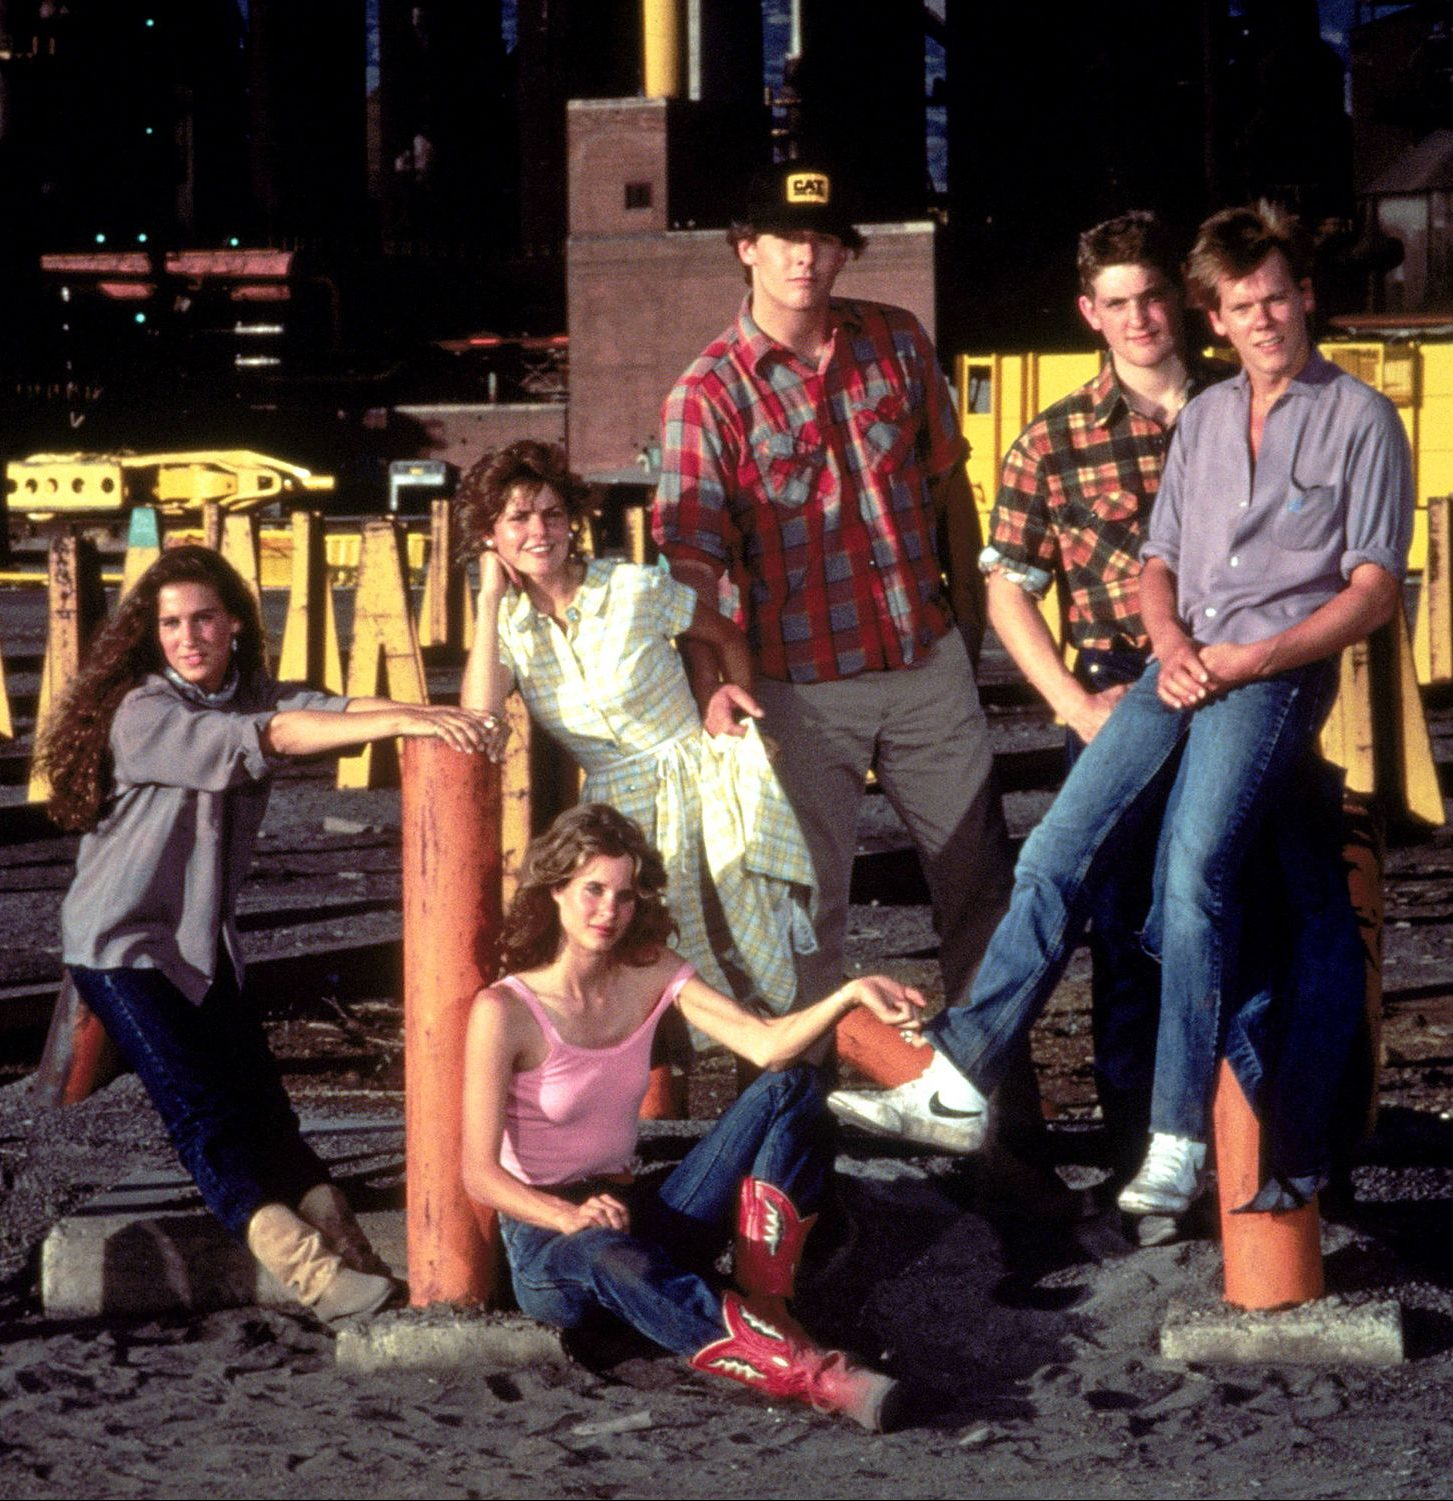 0431d71f89d6ce457b0e022d7cb960aa e1583330461680 Kick Off Your Sunday Shoes With 20 Facts About Footloose